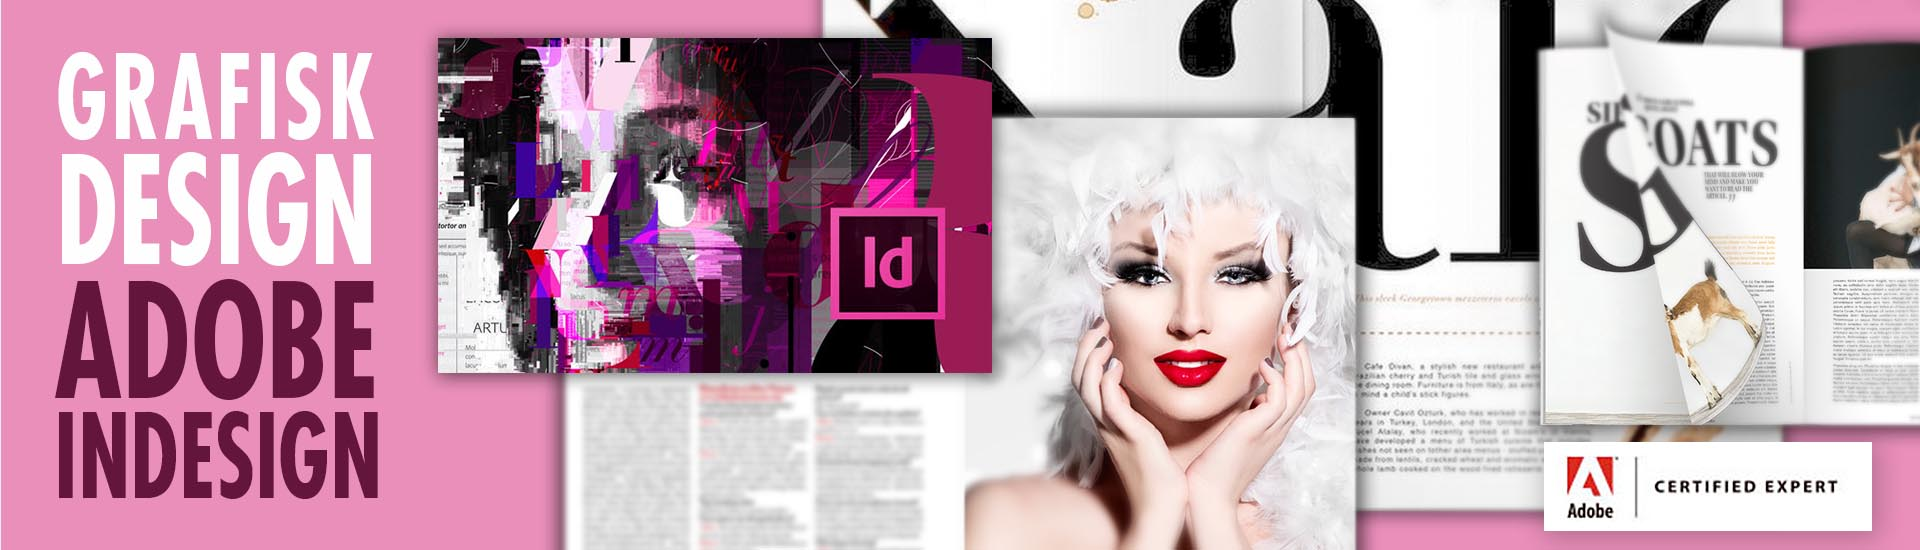 cropped-indesign_header2.jpg